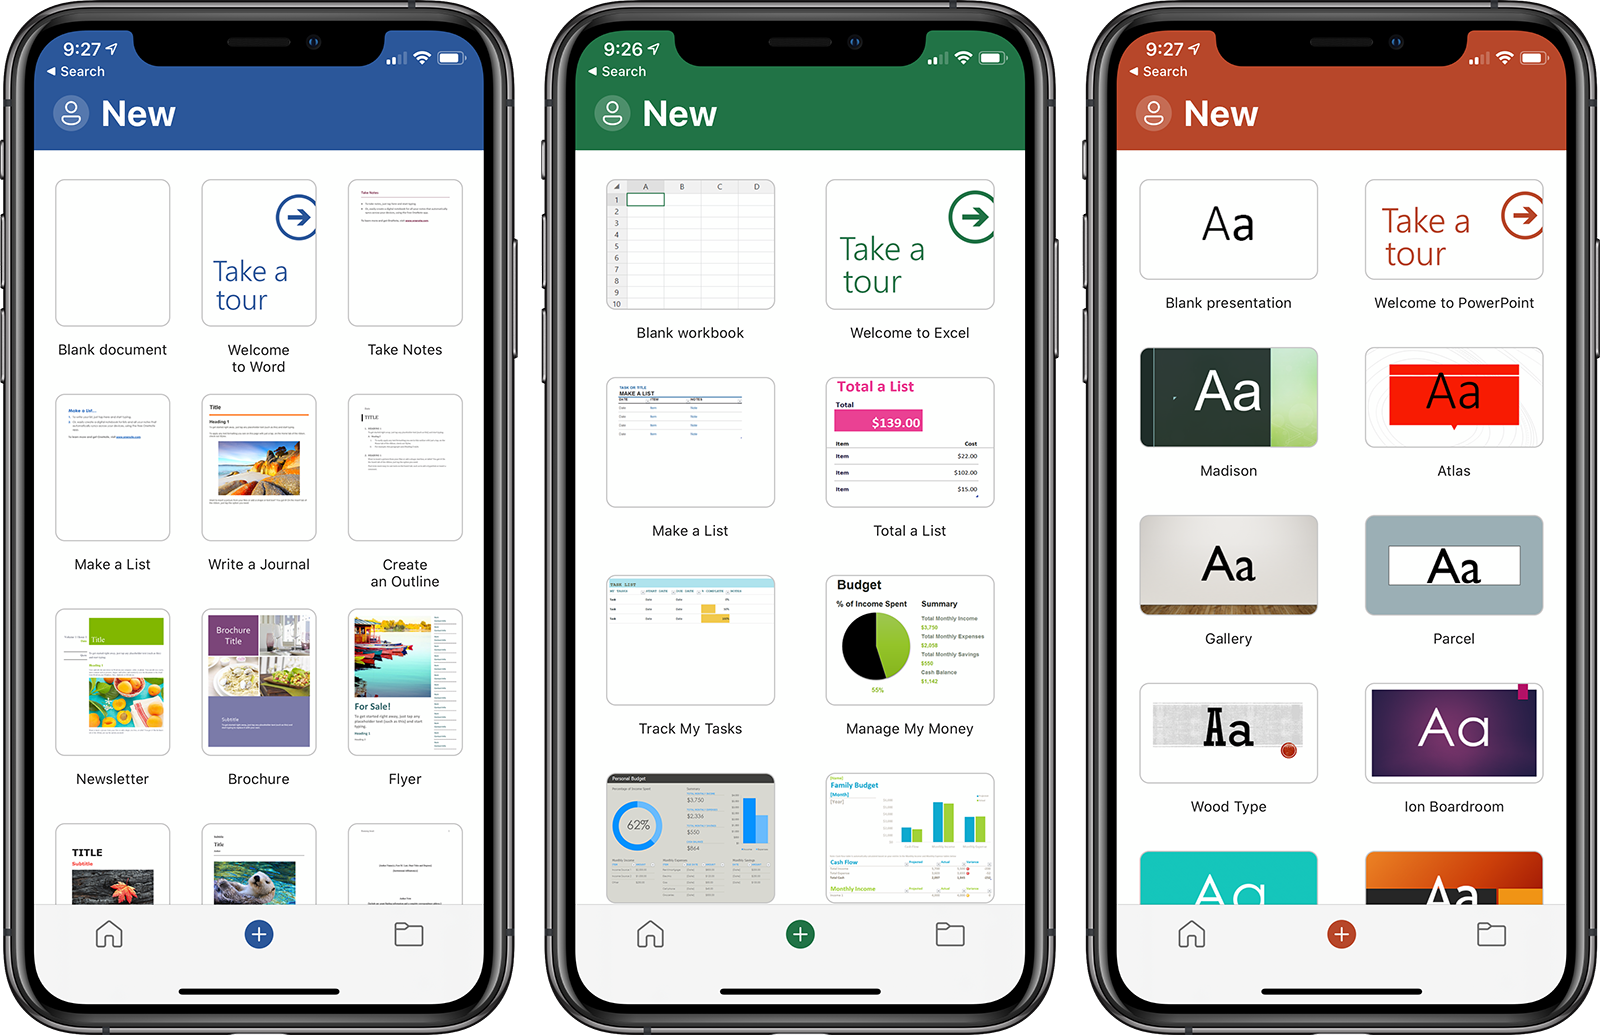 Microsoft Word, Excel, and PowerPoint Apps Redesigned With Simplified Three-Tab Layout on iPhone - MacRumors